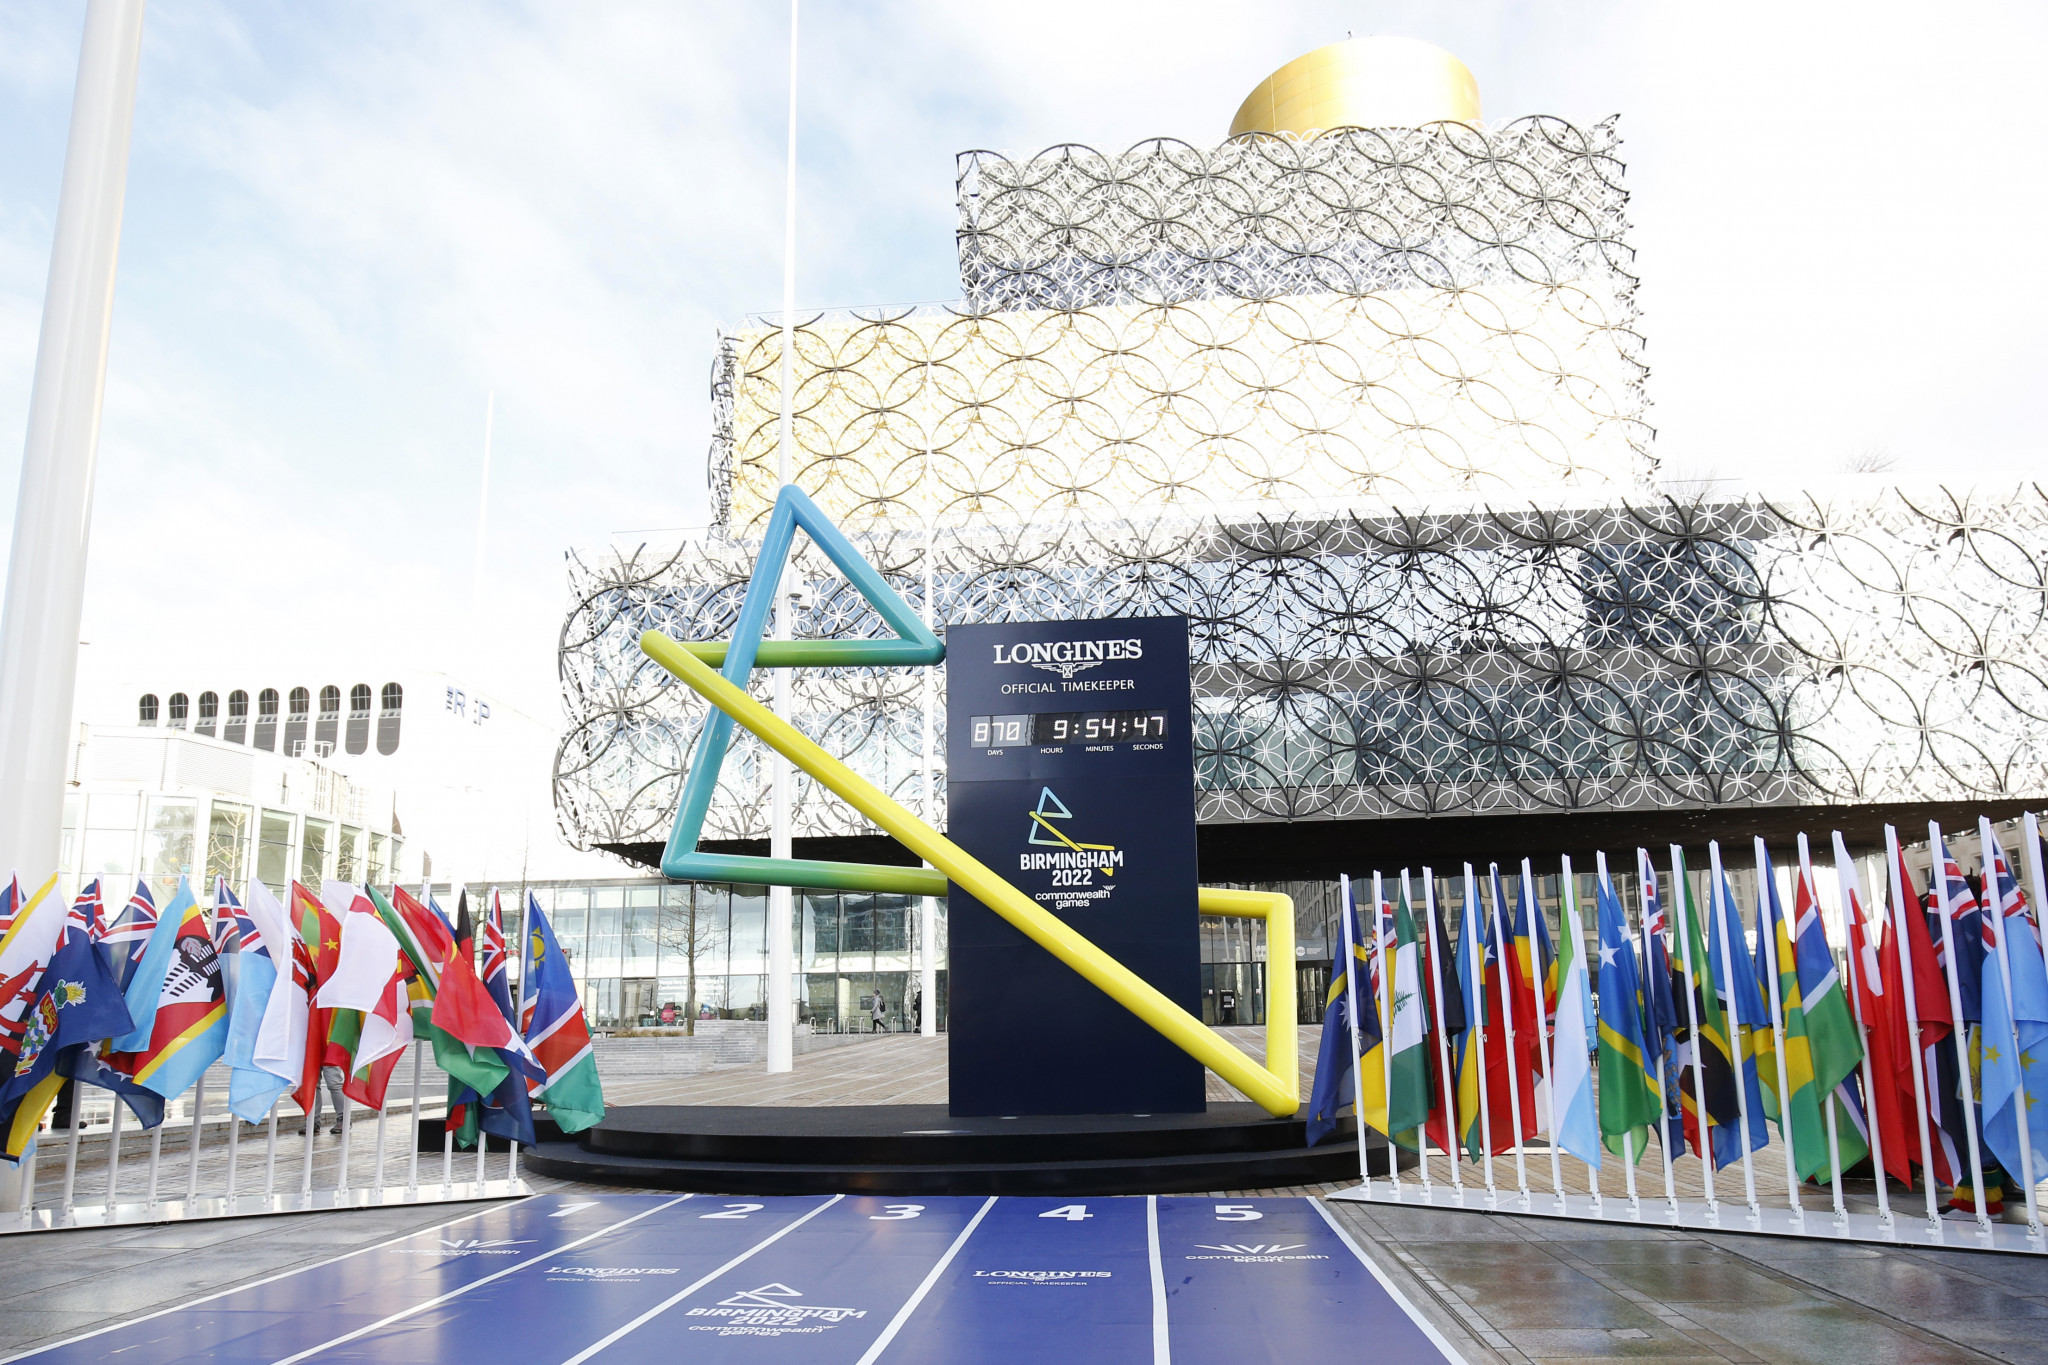 Andy Street says he believes the Birmingham 2022 Commonwealth Games will be an important part of helping the area's financial recovery from the coronavirus pandemic ©Getty Images